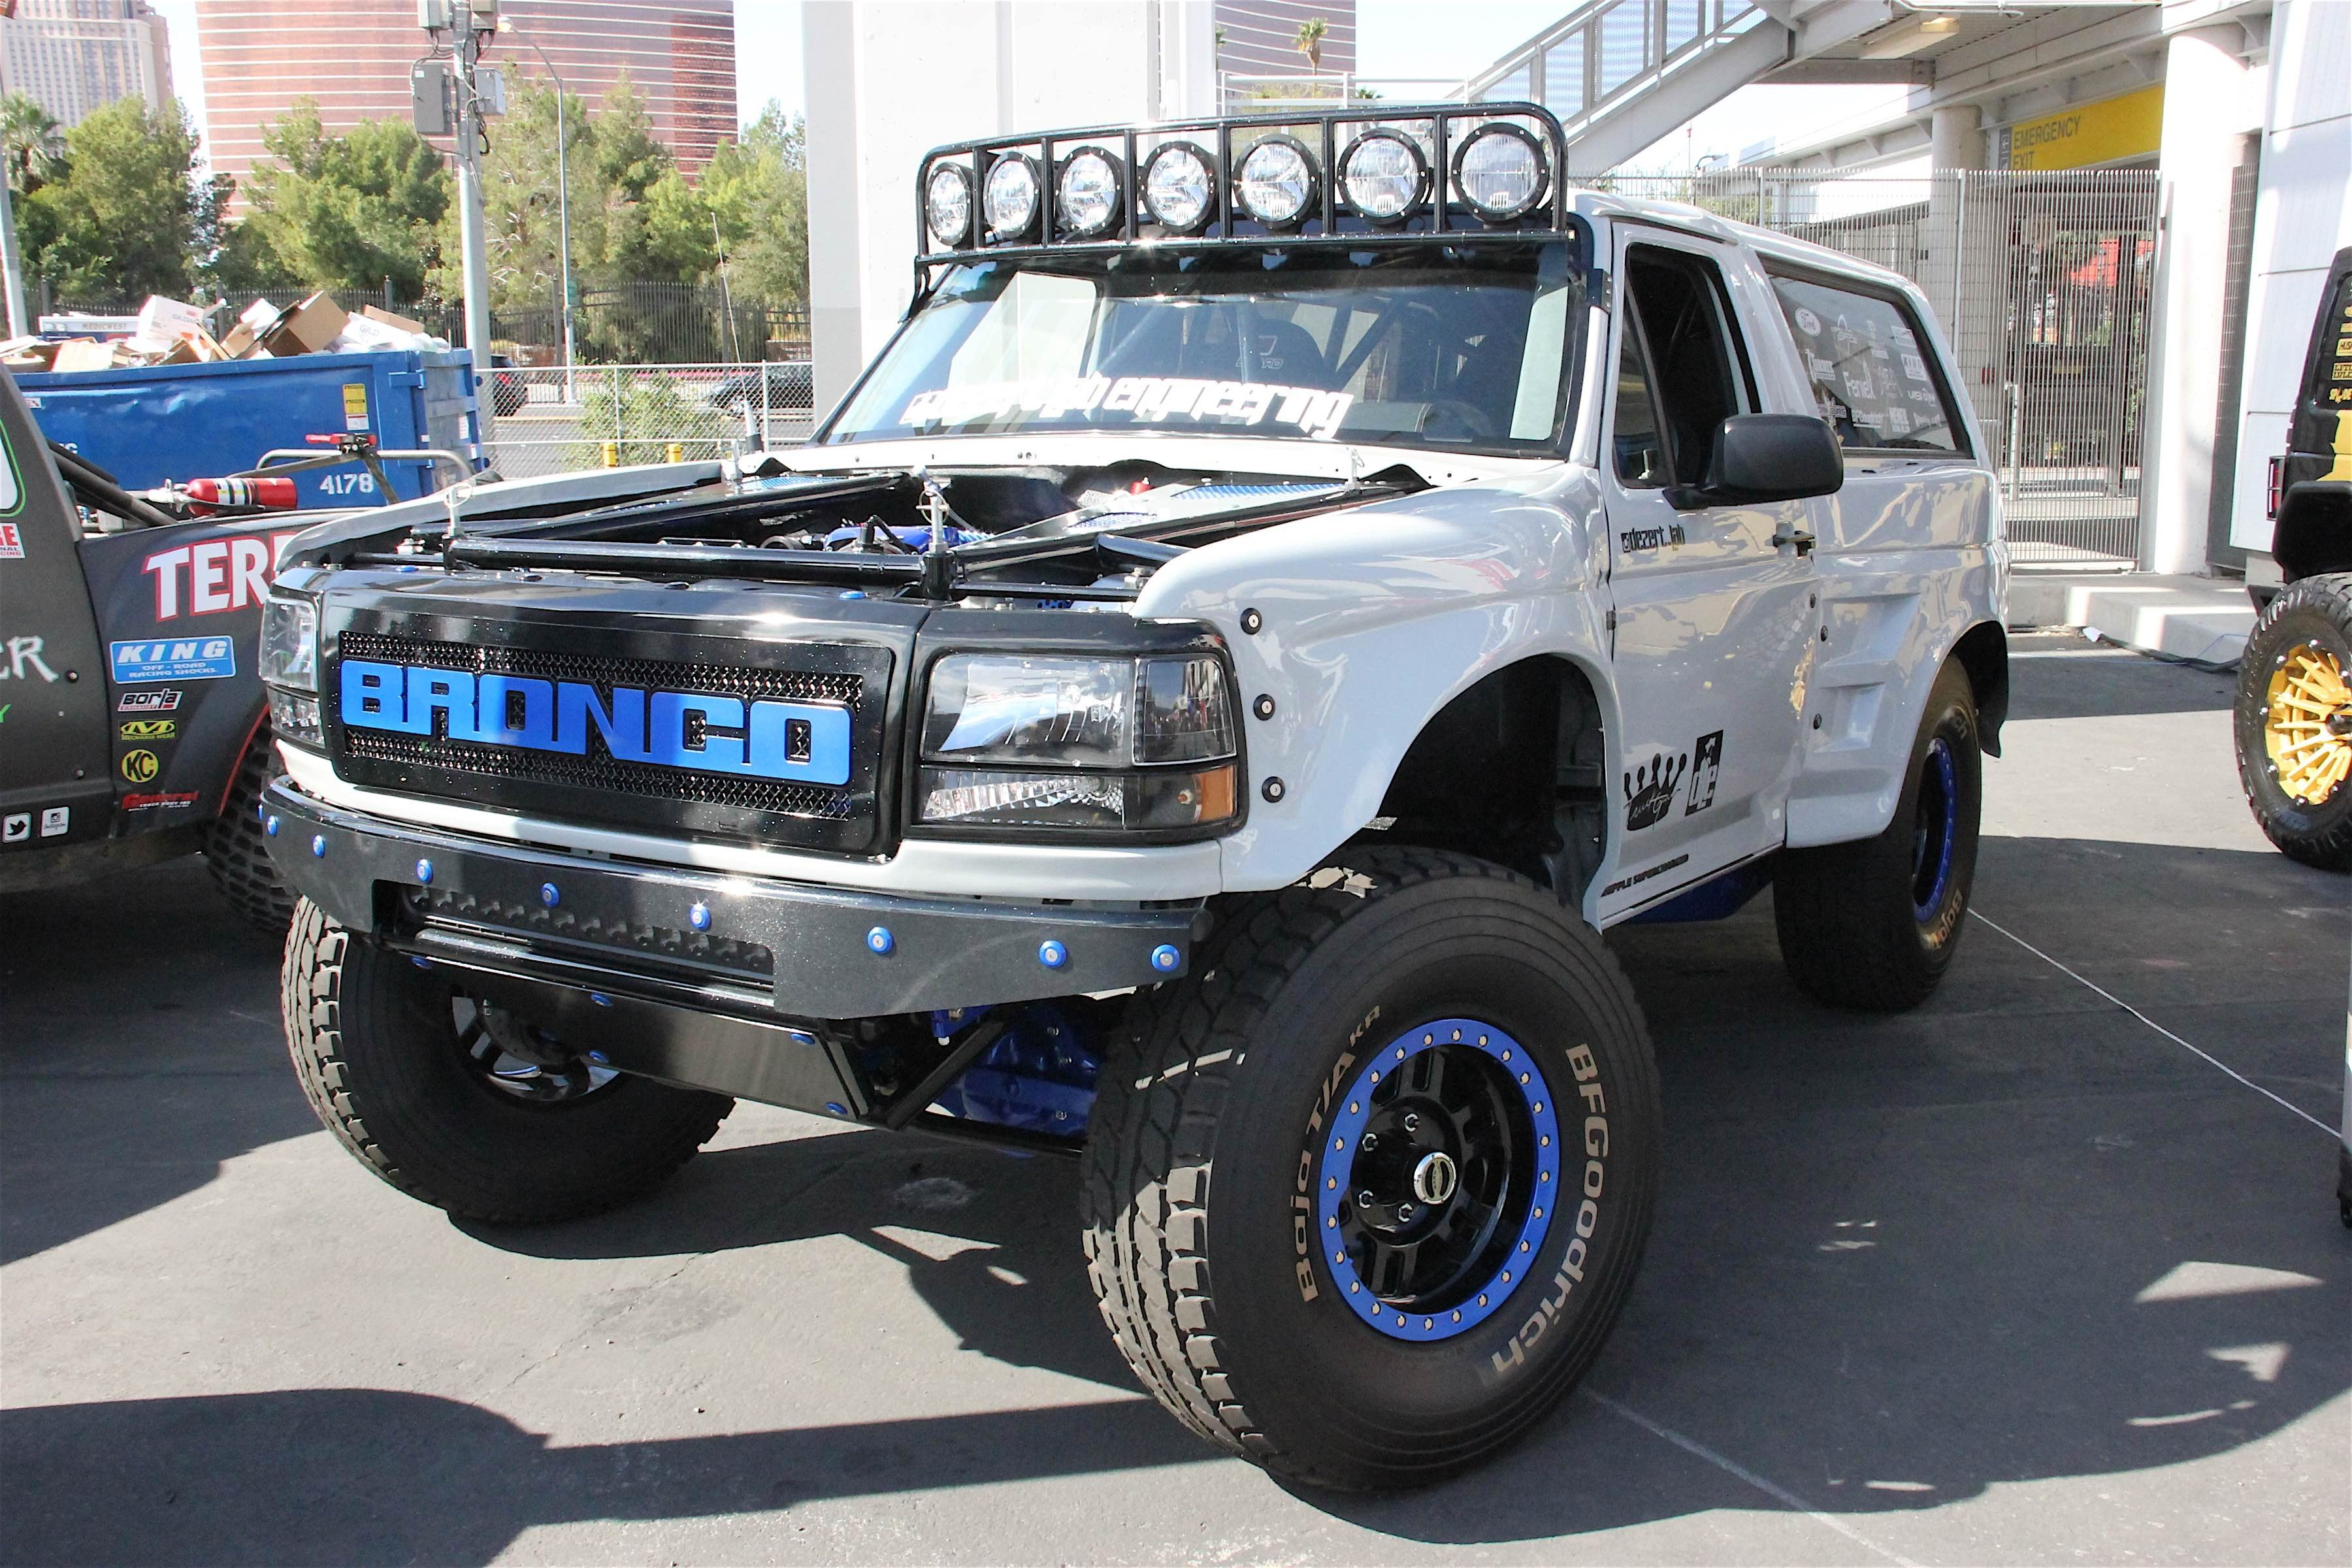 Sema 2017 One Bad Bronco Makes It To Battle Of The Builders Top 12 Ford Paint Jobs Show A Number Late Model Vehicles Can Be Seen Everywhere Especially At Seeing Clean Vehicle Like 1995 We Spotted